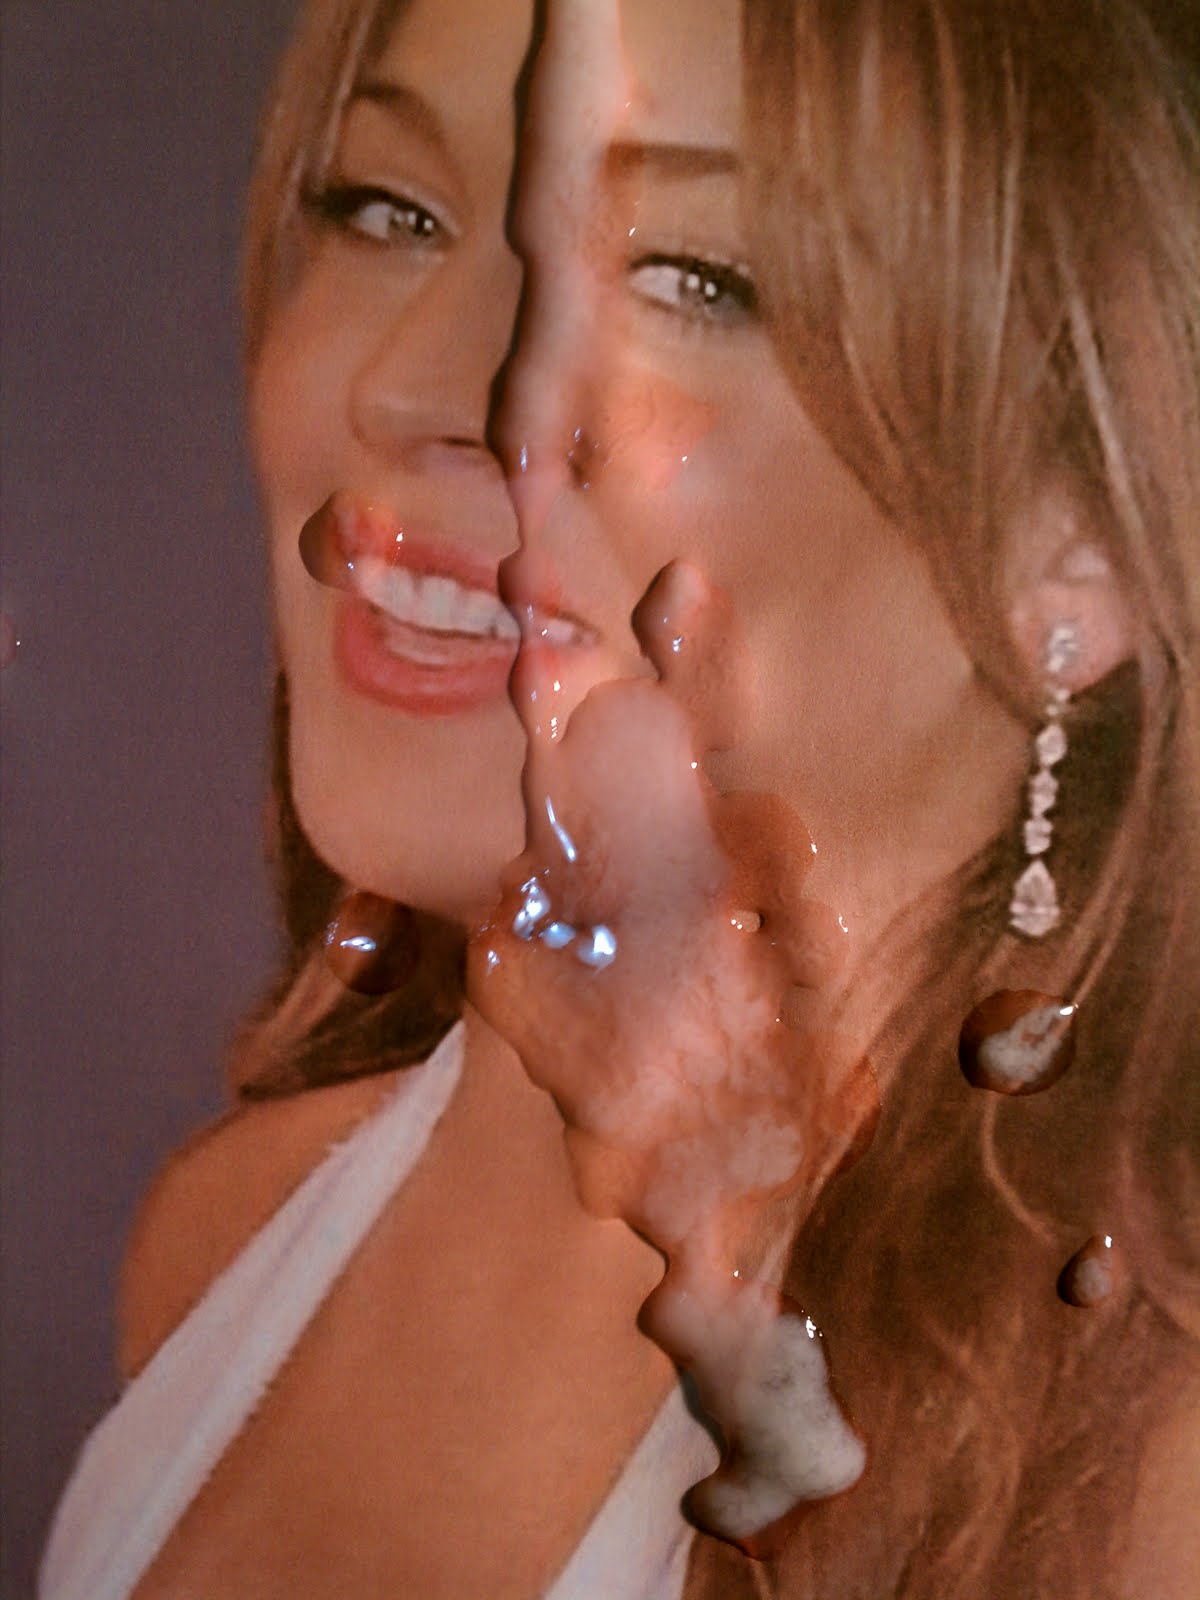 lindsay lohan with cum on her face